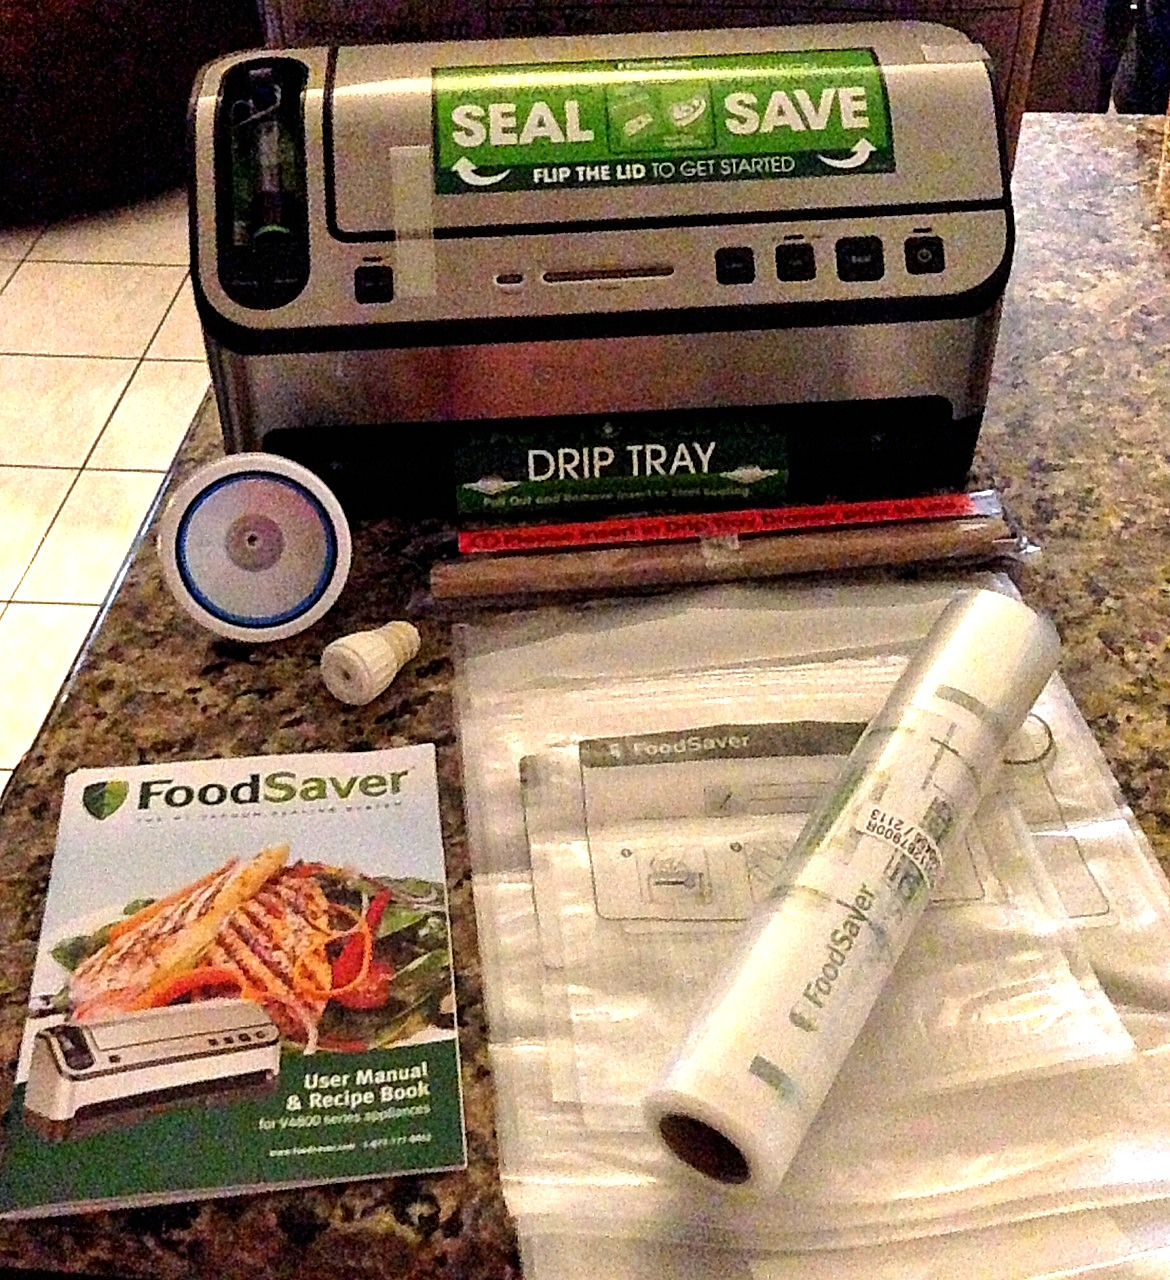 New Food Saver 2 In 1 System Who Said Nothing In Life Is